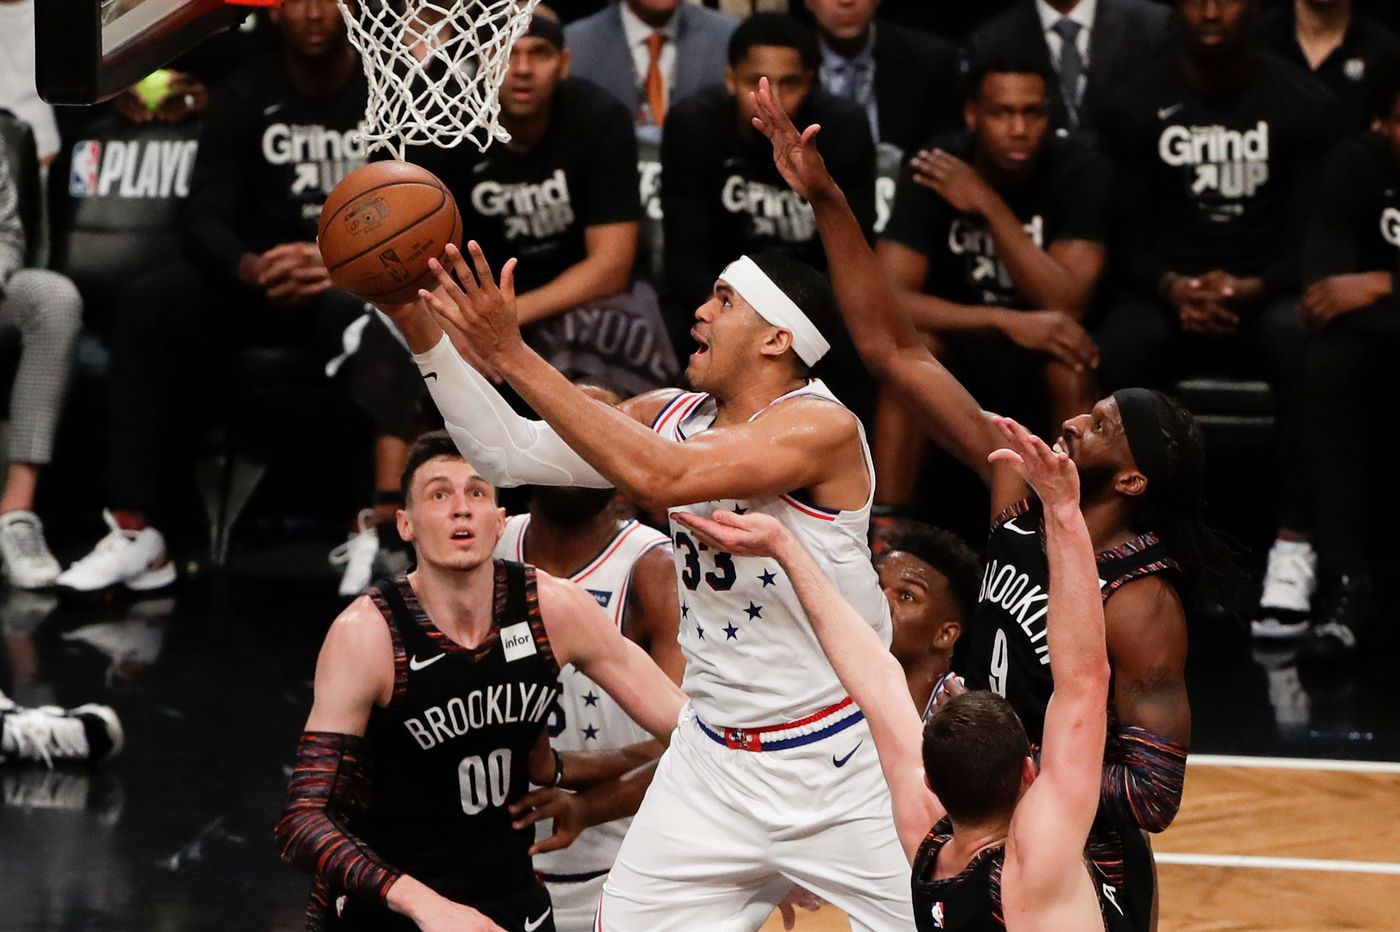 Sixers-Nets observations: Tobias Harris' advantage, effort; Brooklyn's early miscues